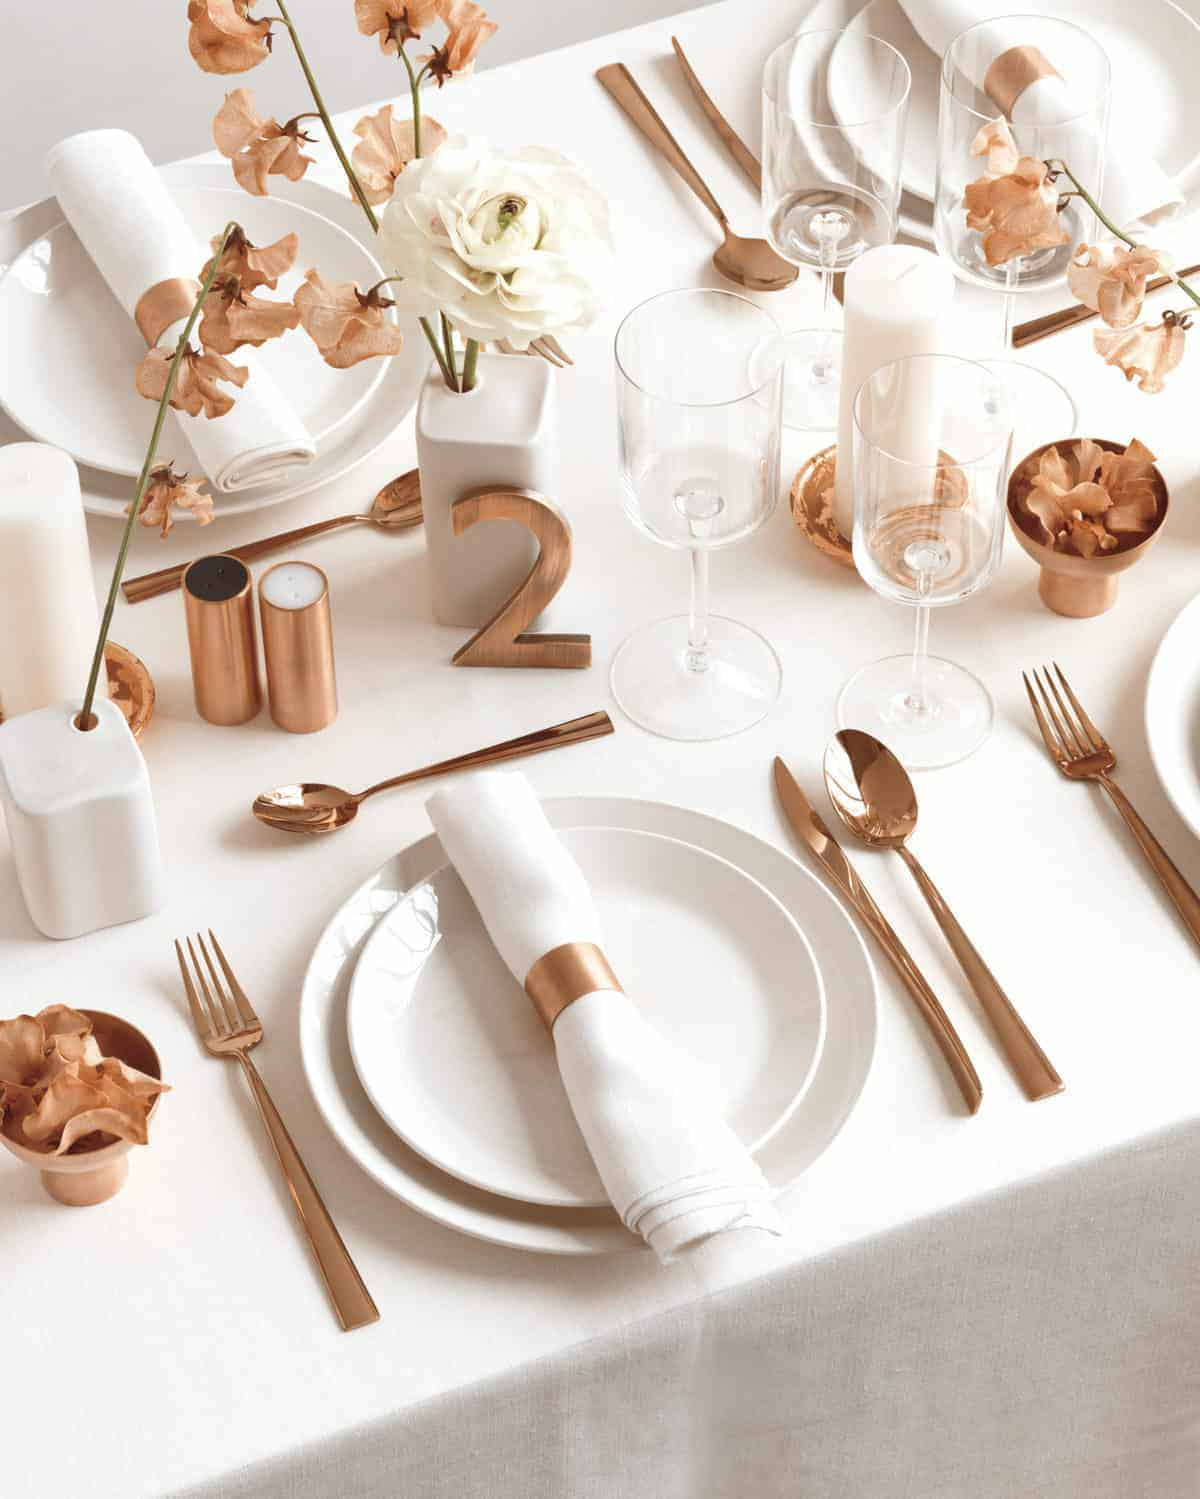 10 Charming Table Settings For Your Next Party Sugar And Charm